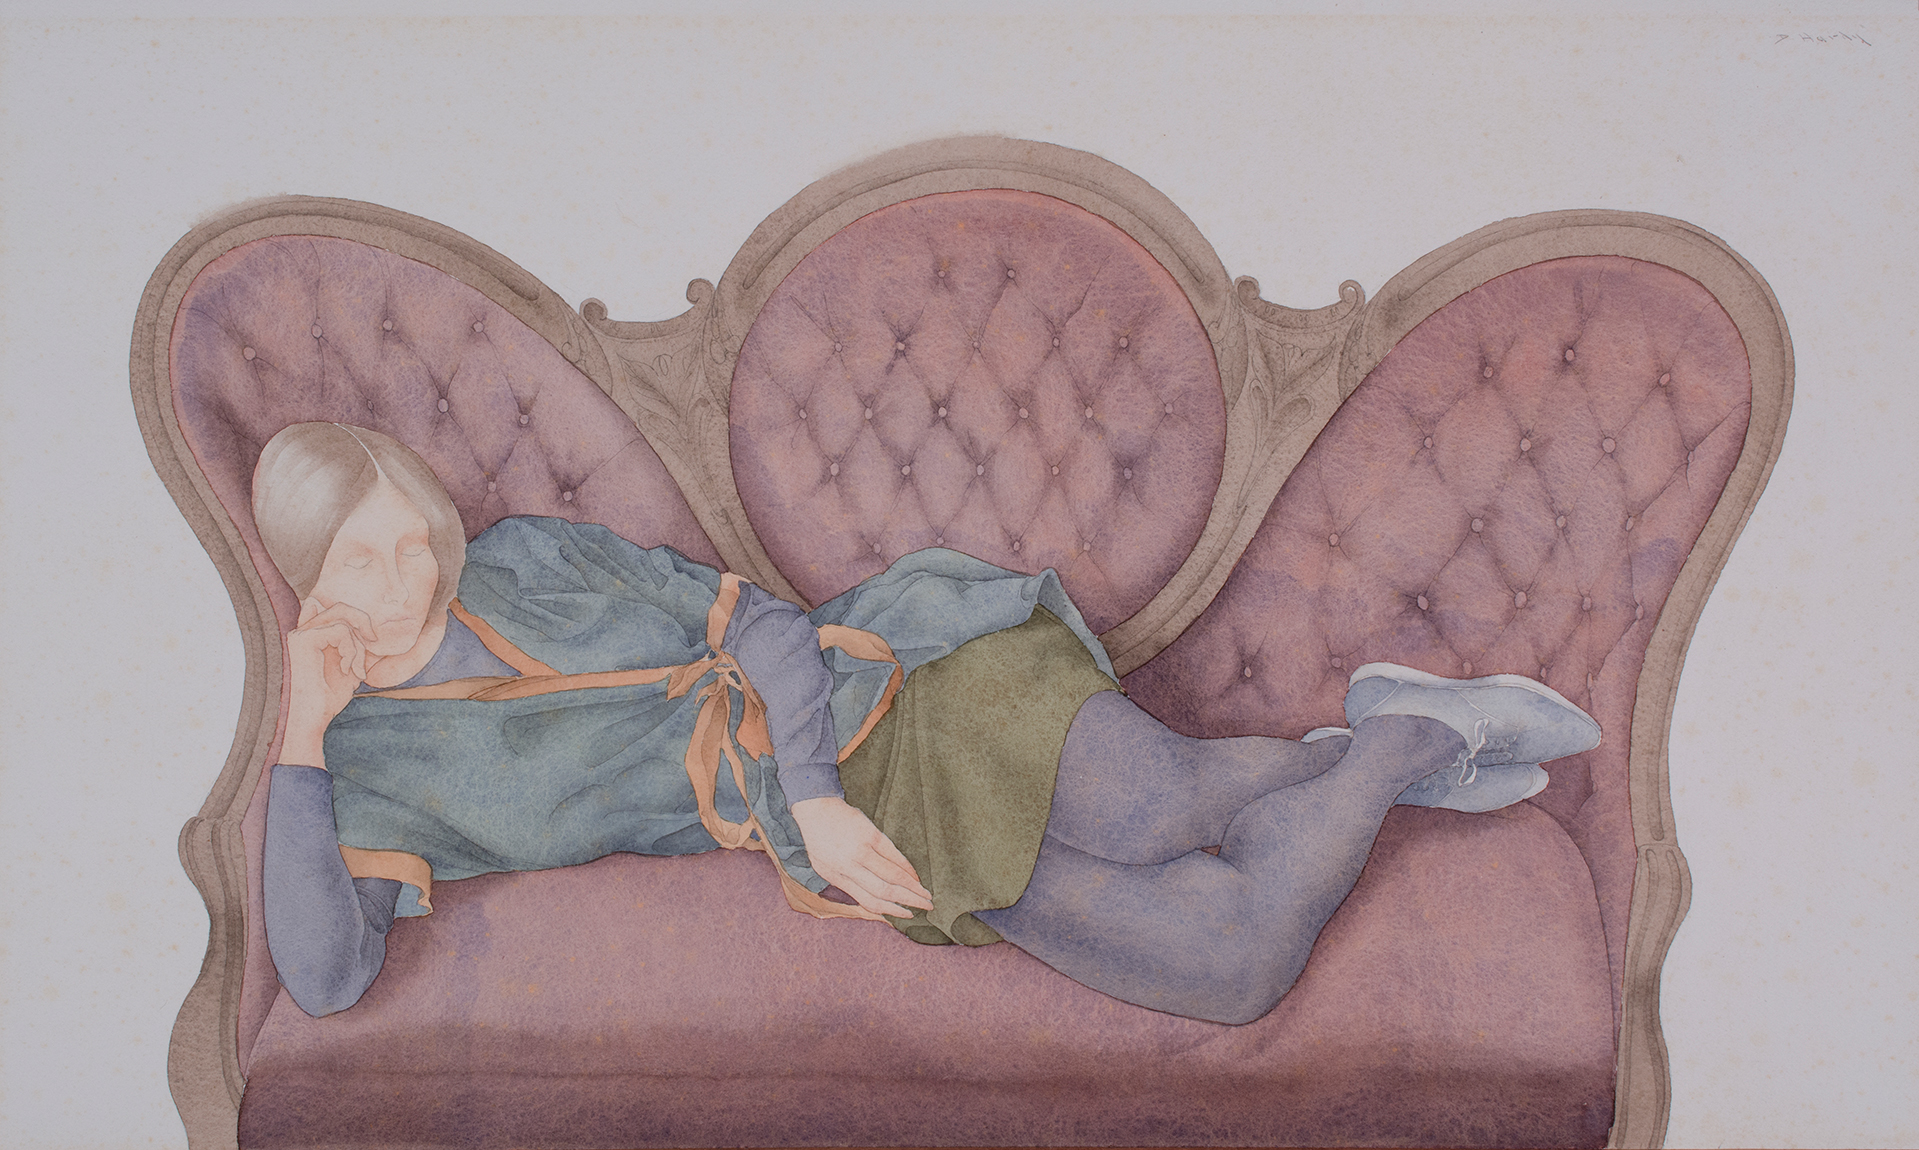 """Reclining Figure on Victorian Couch"" is a watercolor on paper, c. 1966, by DeWitt Hardy. (Ogunquit Museum of Art)"